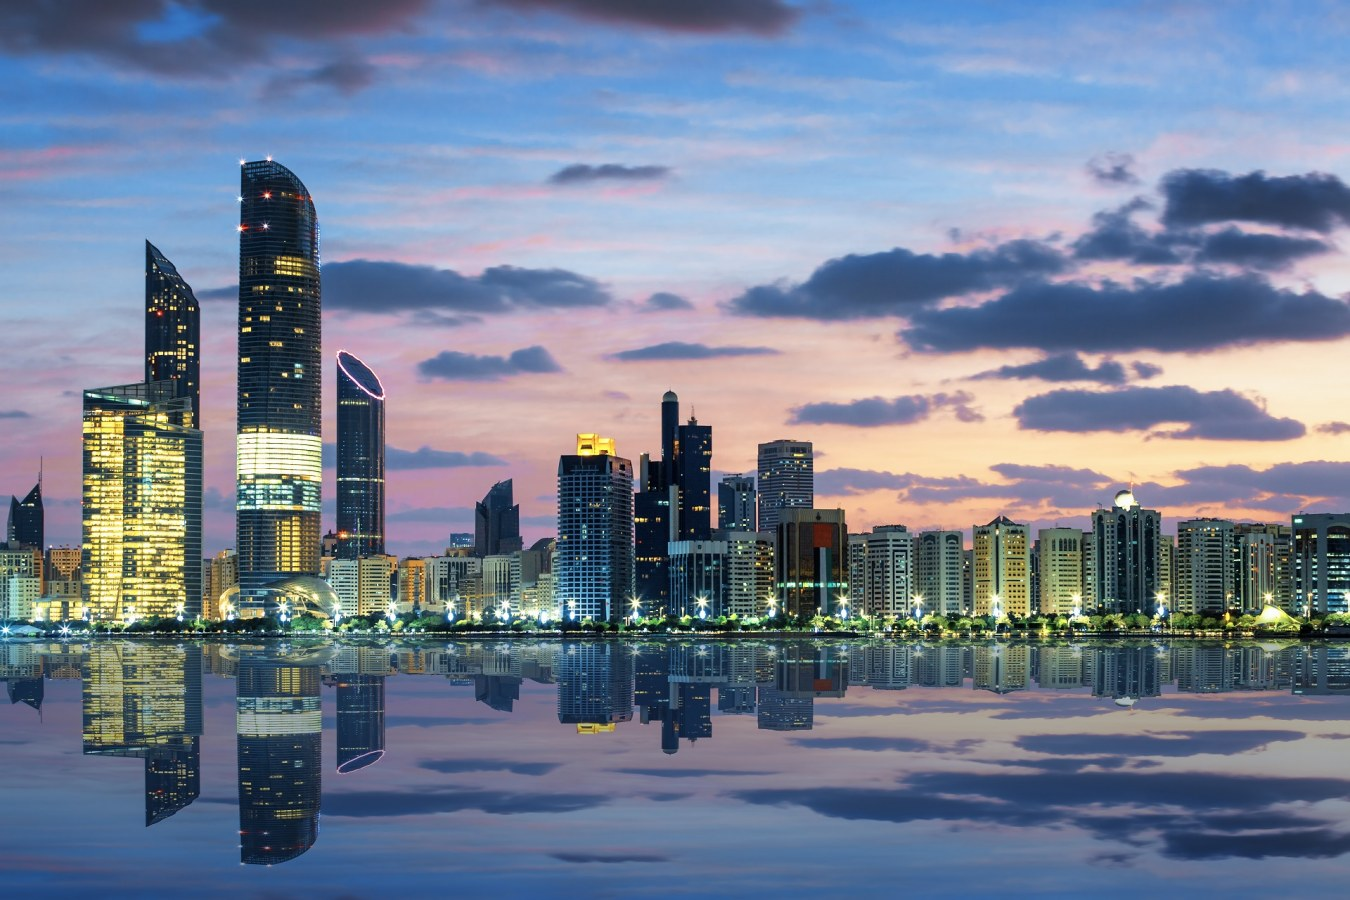 Abu Dhabi skyline with apartment complexes and skyscrapers